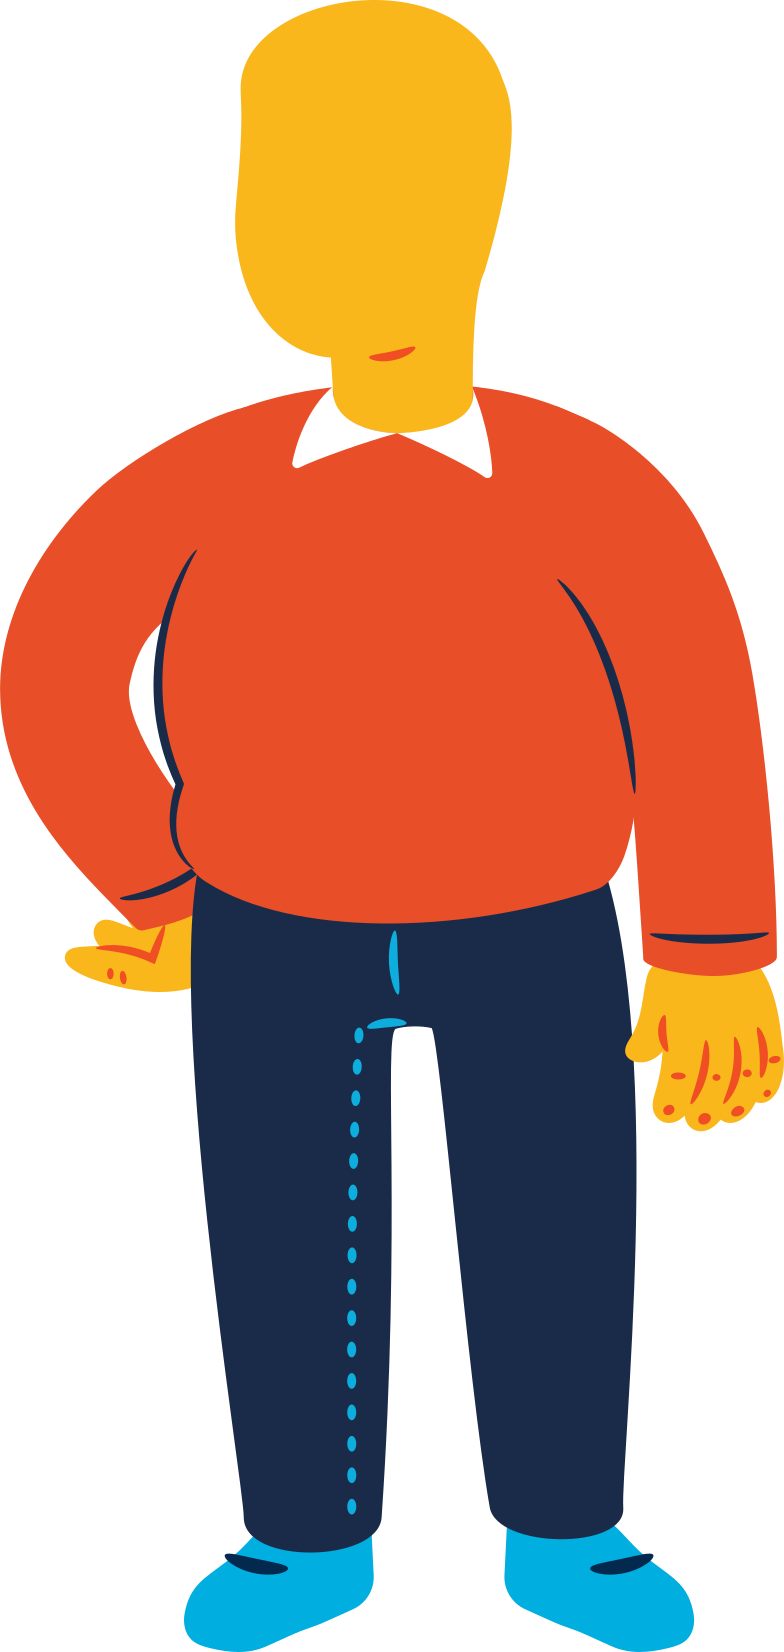 style chubby man standing Vector images in PNG and SVG | Icons8 Illustrations